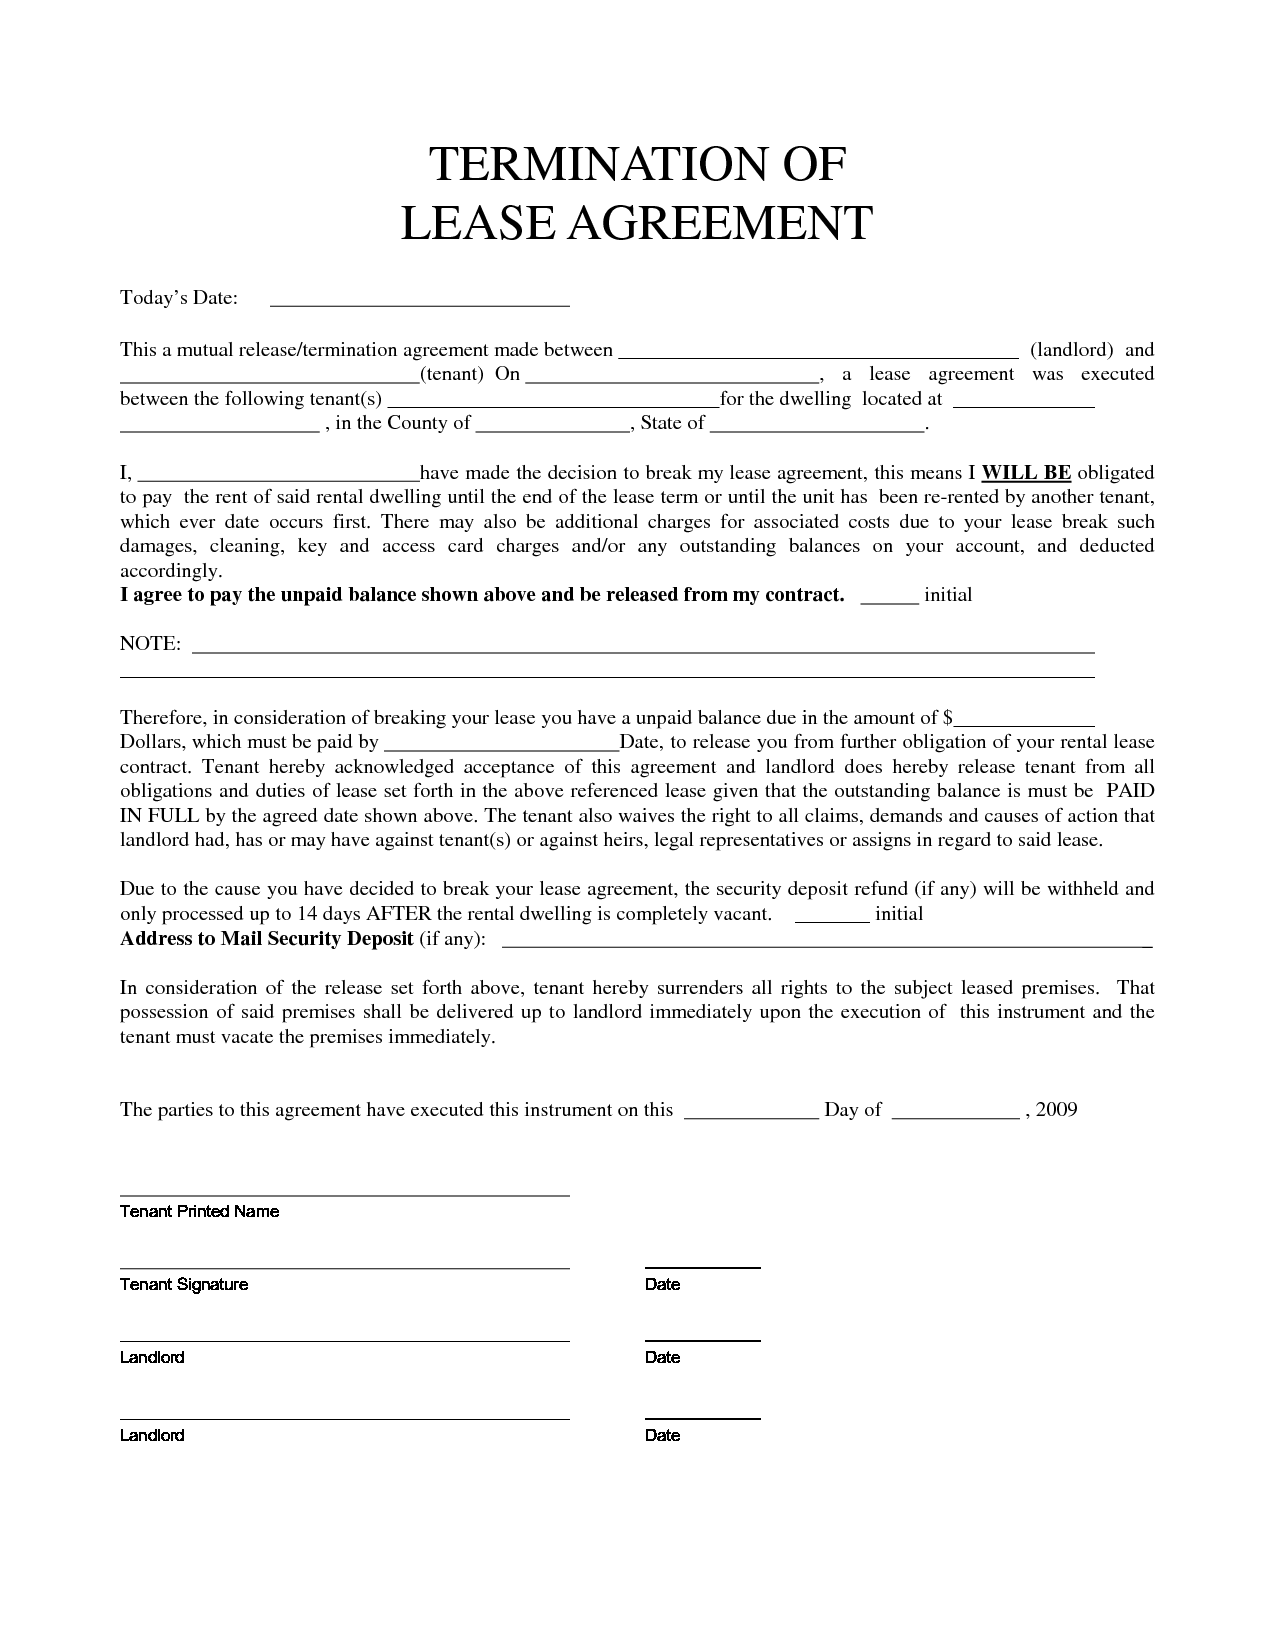 Personal property rental agreement forms property for Equipment lease agreement template south africa